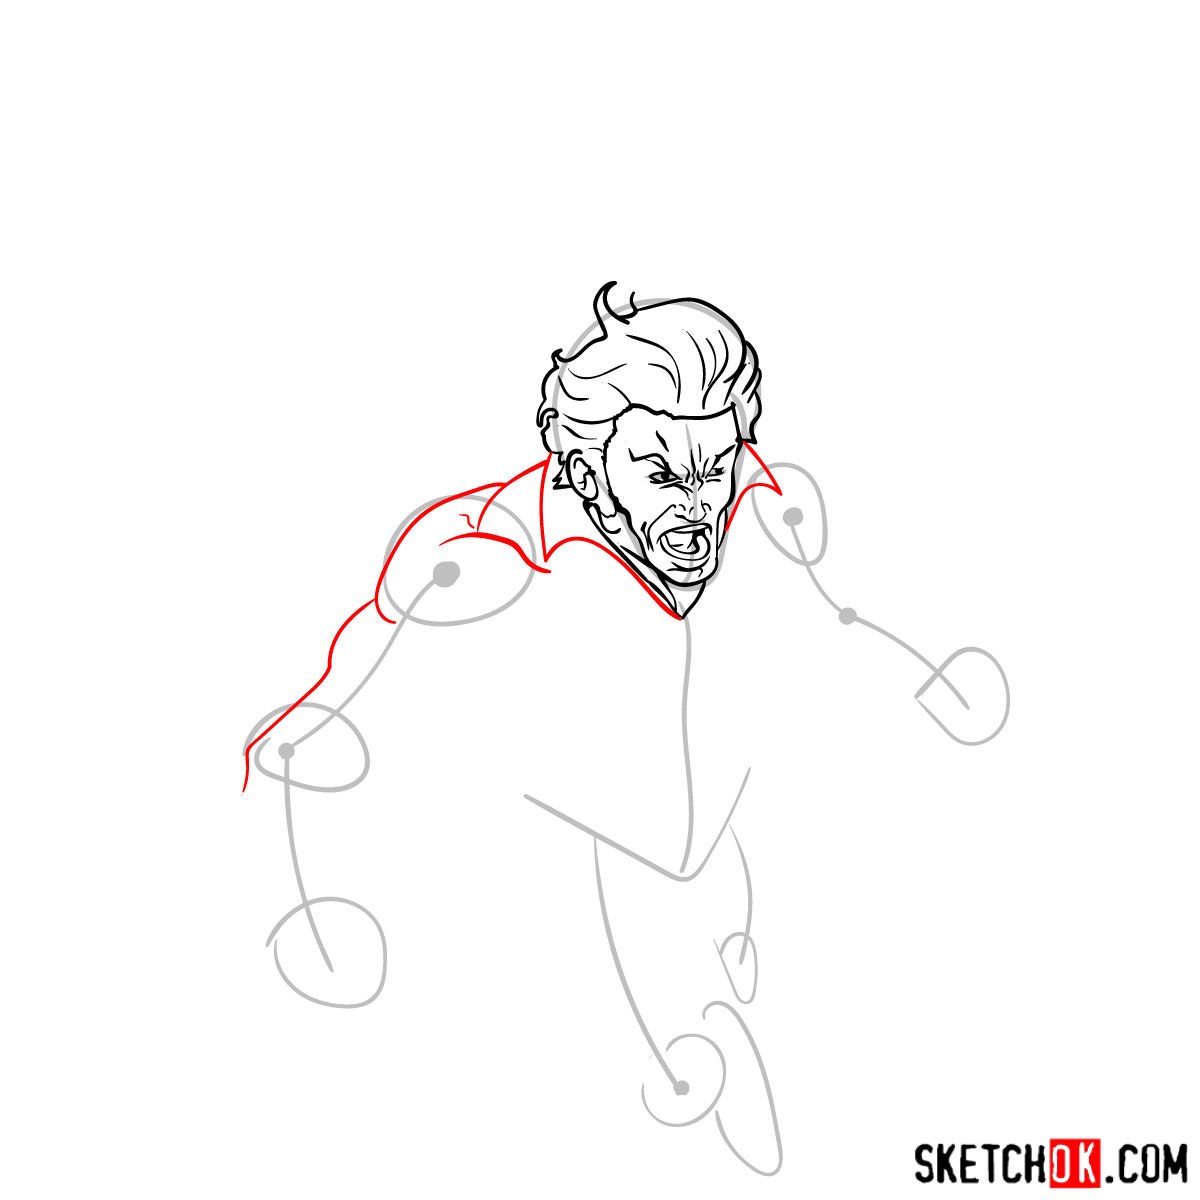 How to draw Banshee mutant from X-Men - 